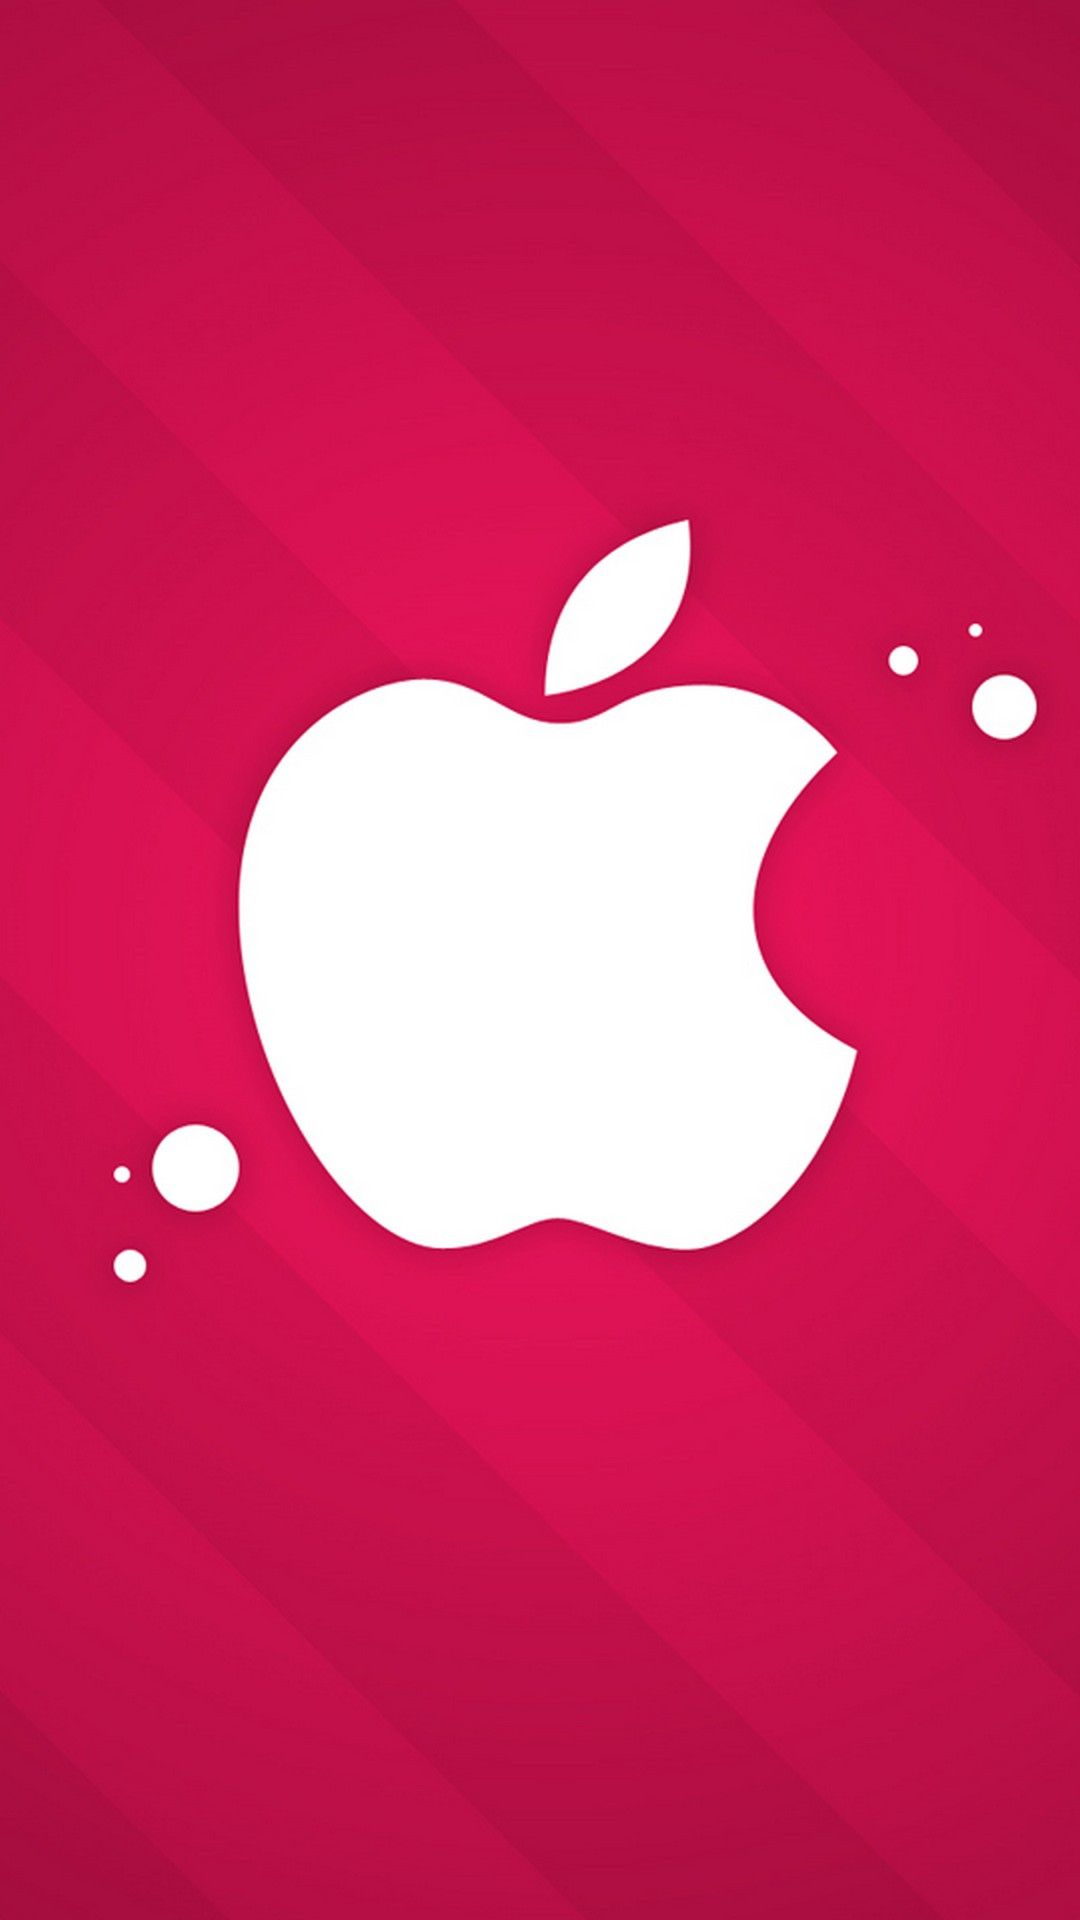 Apple Girly Wallpaper For Android Phones Best Hd Wallpapers Iphone Wallpaper Girly Wallpaper Iphone Cute Apple Wallpaper